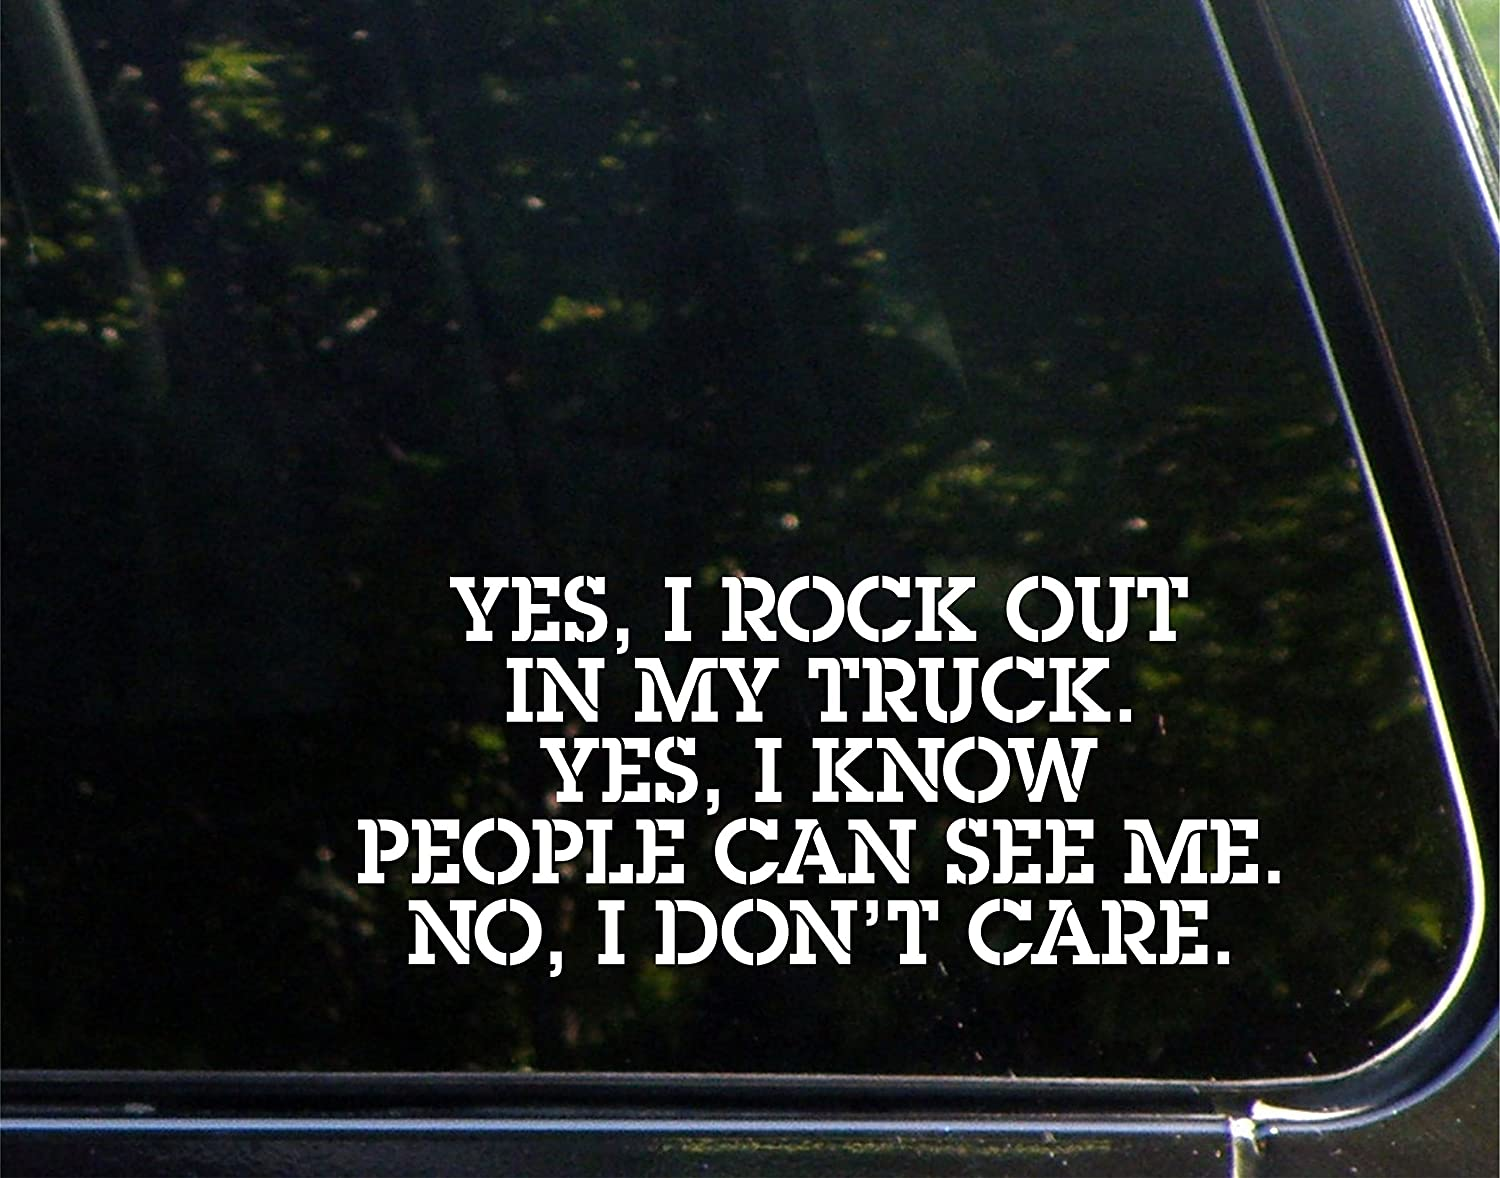 """Yes, I Rock Out in My Truck. Yes, I Know People Can See Me. No, I Don't Care. - 8-1/2"""" x 4"""" - Vinyl Die Cut Decal Bumper Sticker for Windows, Cars, Trucks, Laptops, Etc."""